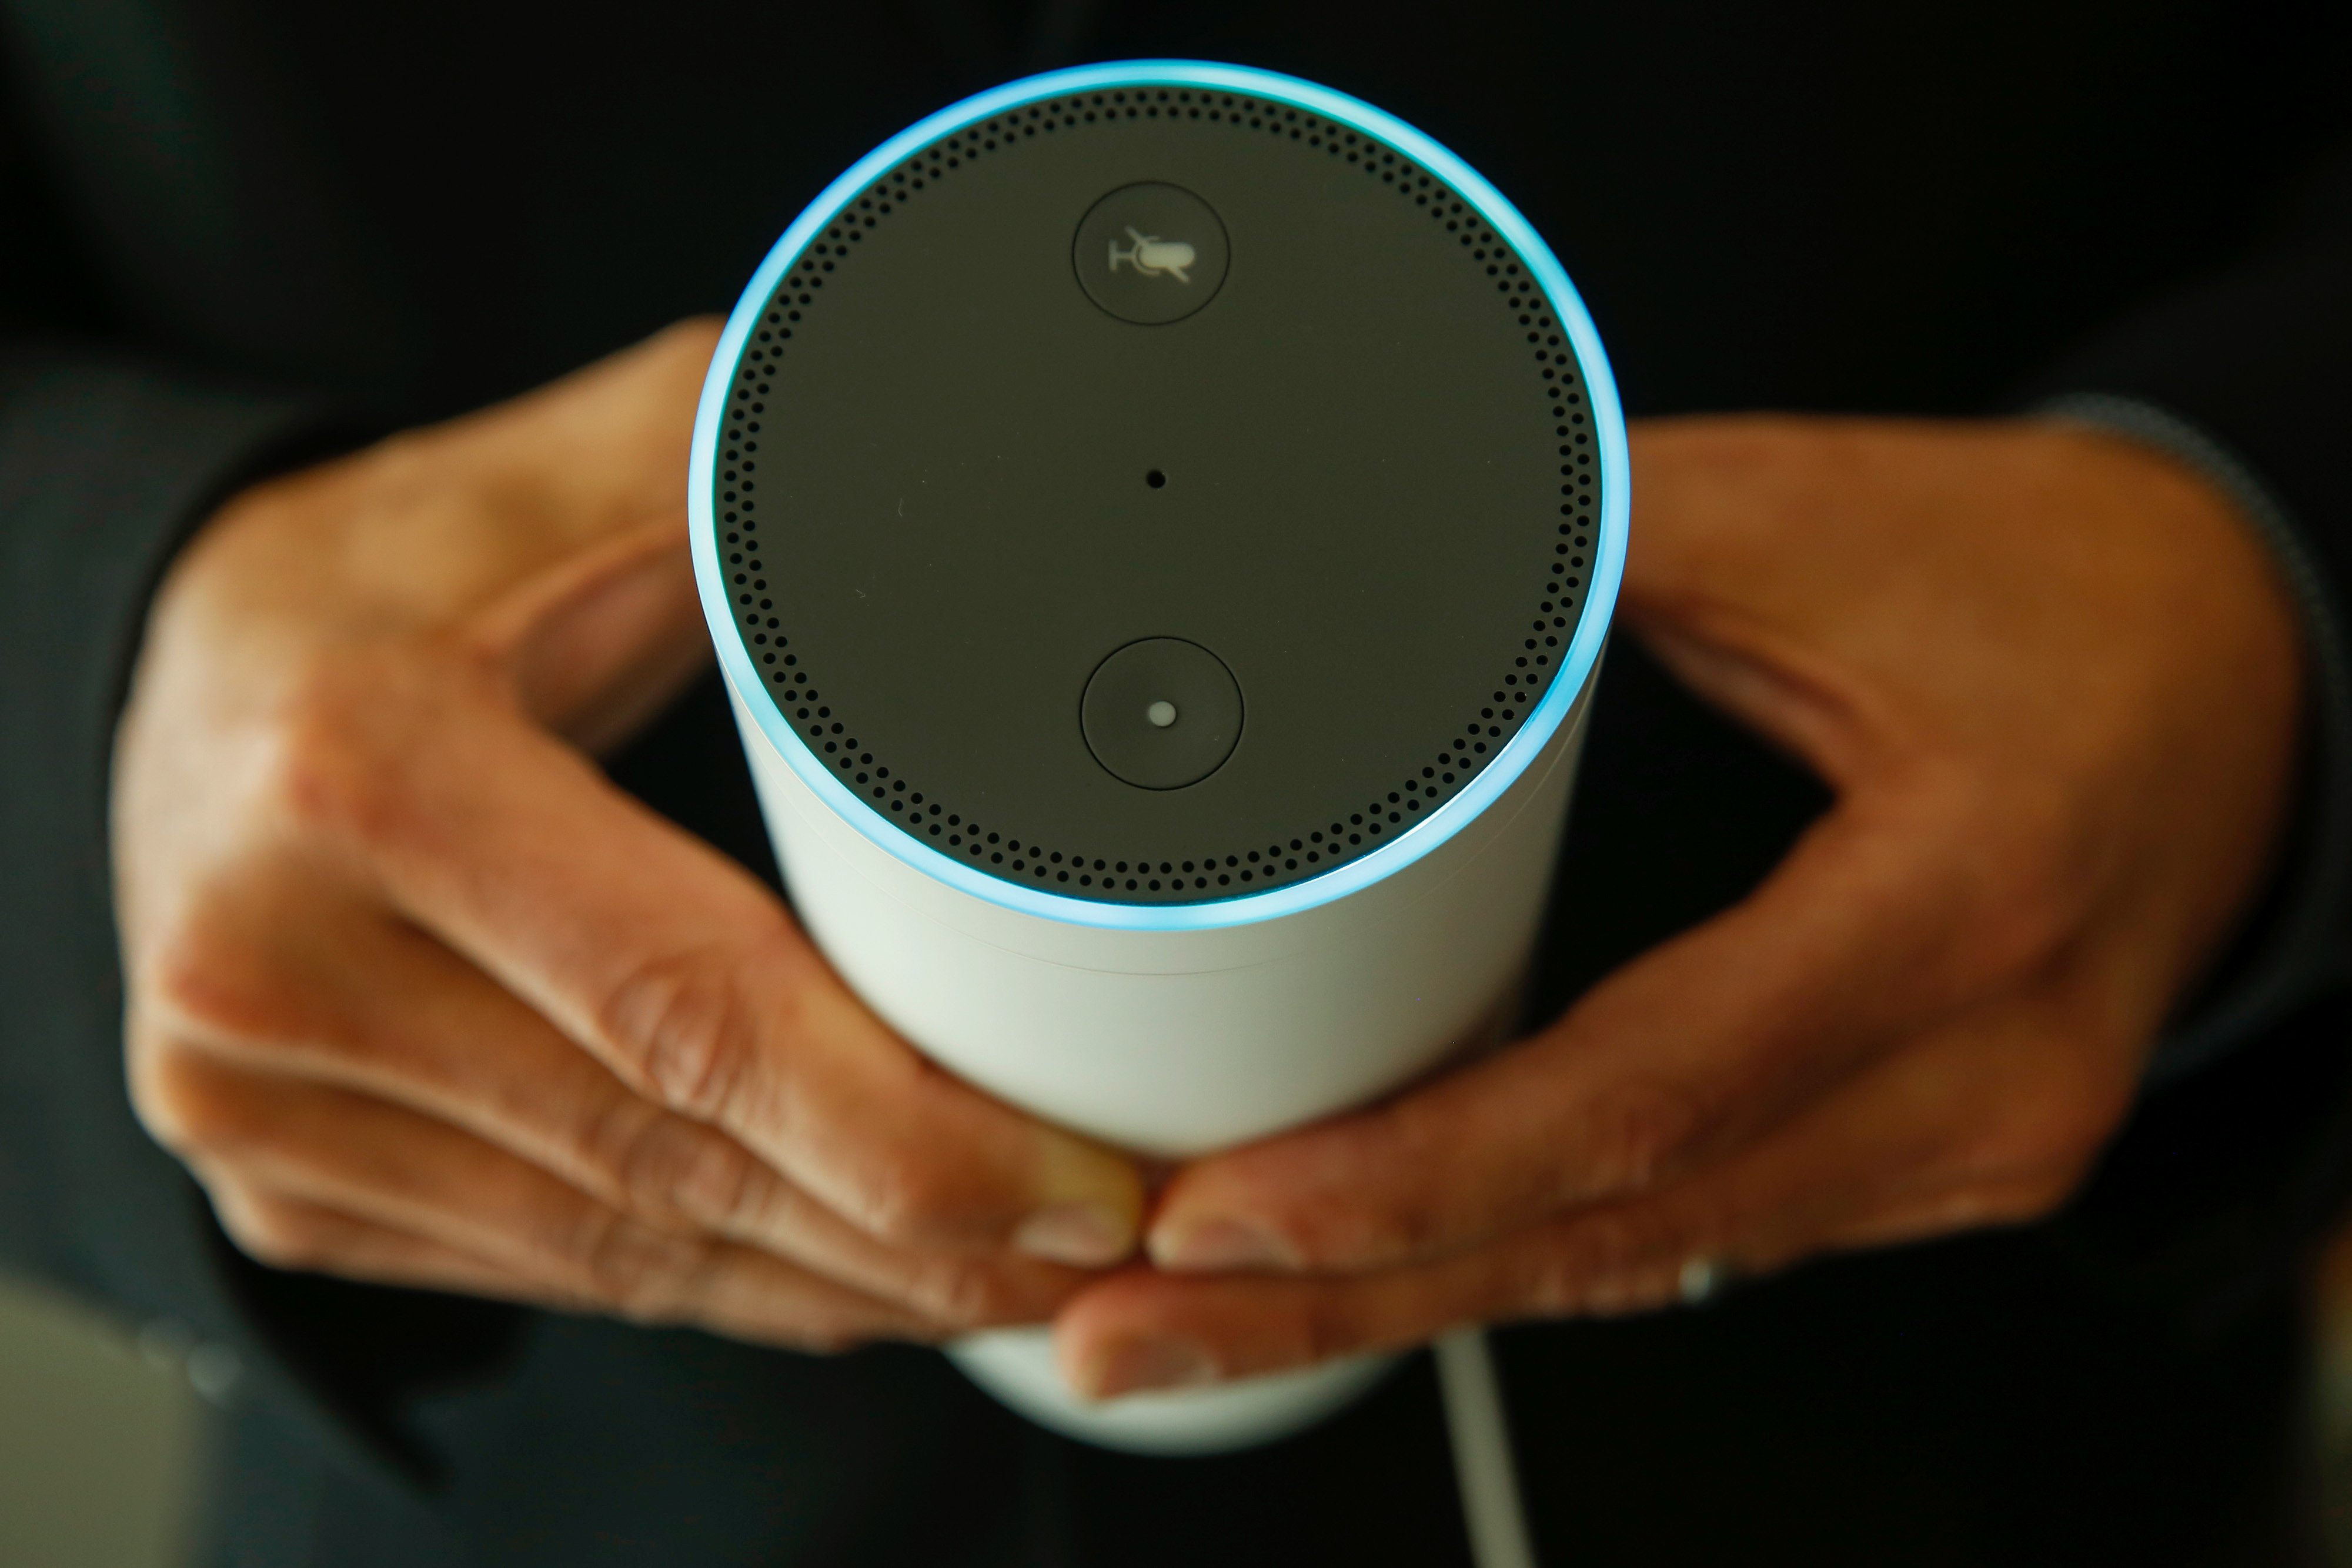 Amazon.com Inc. Launches Its Echo Home Assistant In The U.K.